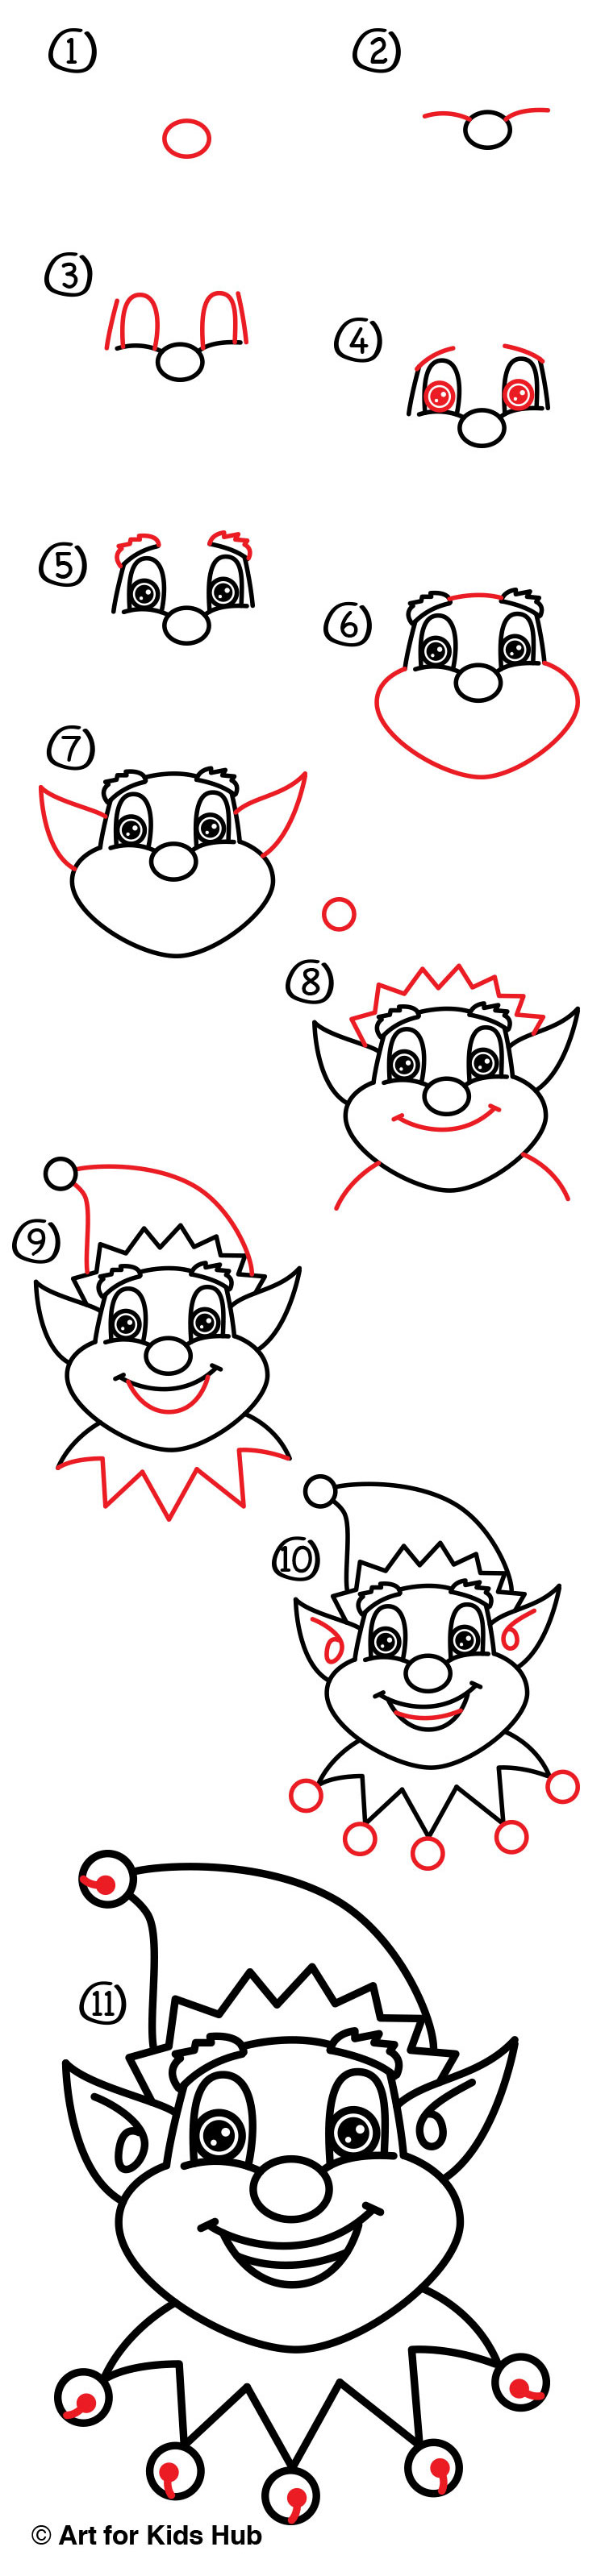 How To Draw A Christmas Elf Face - Art For Kids Hub -